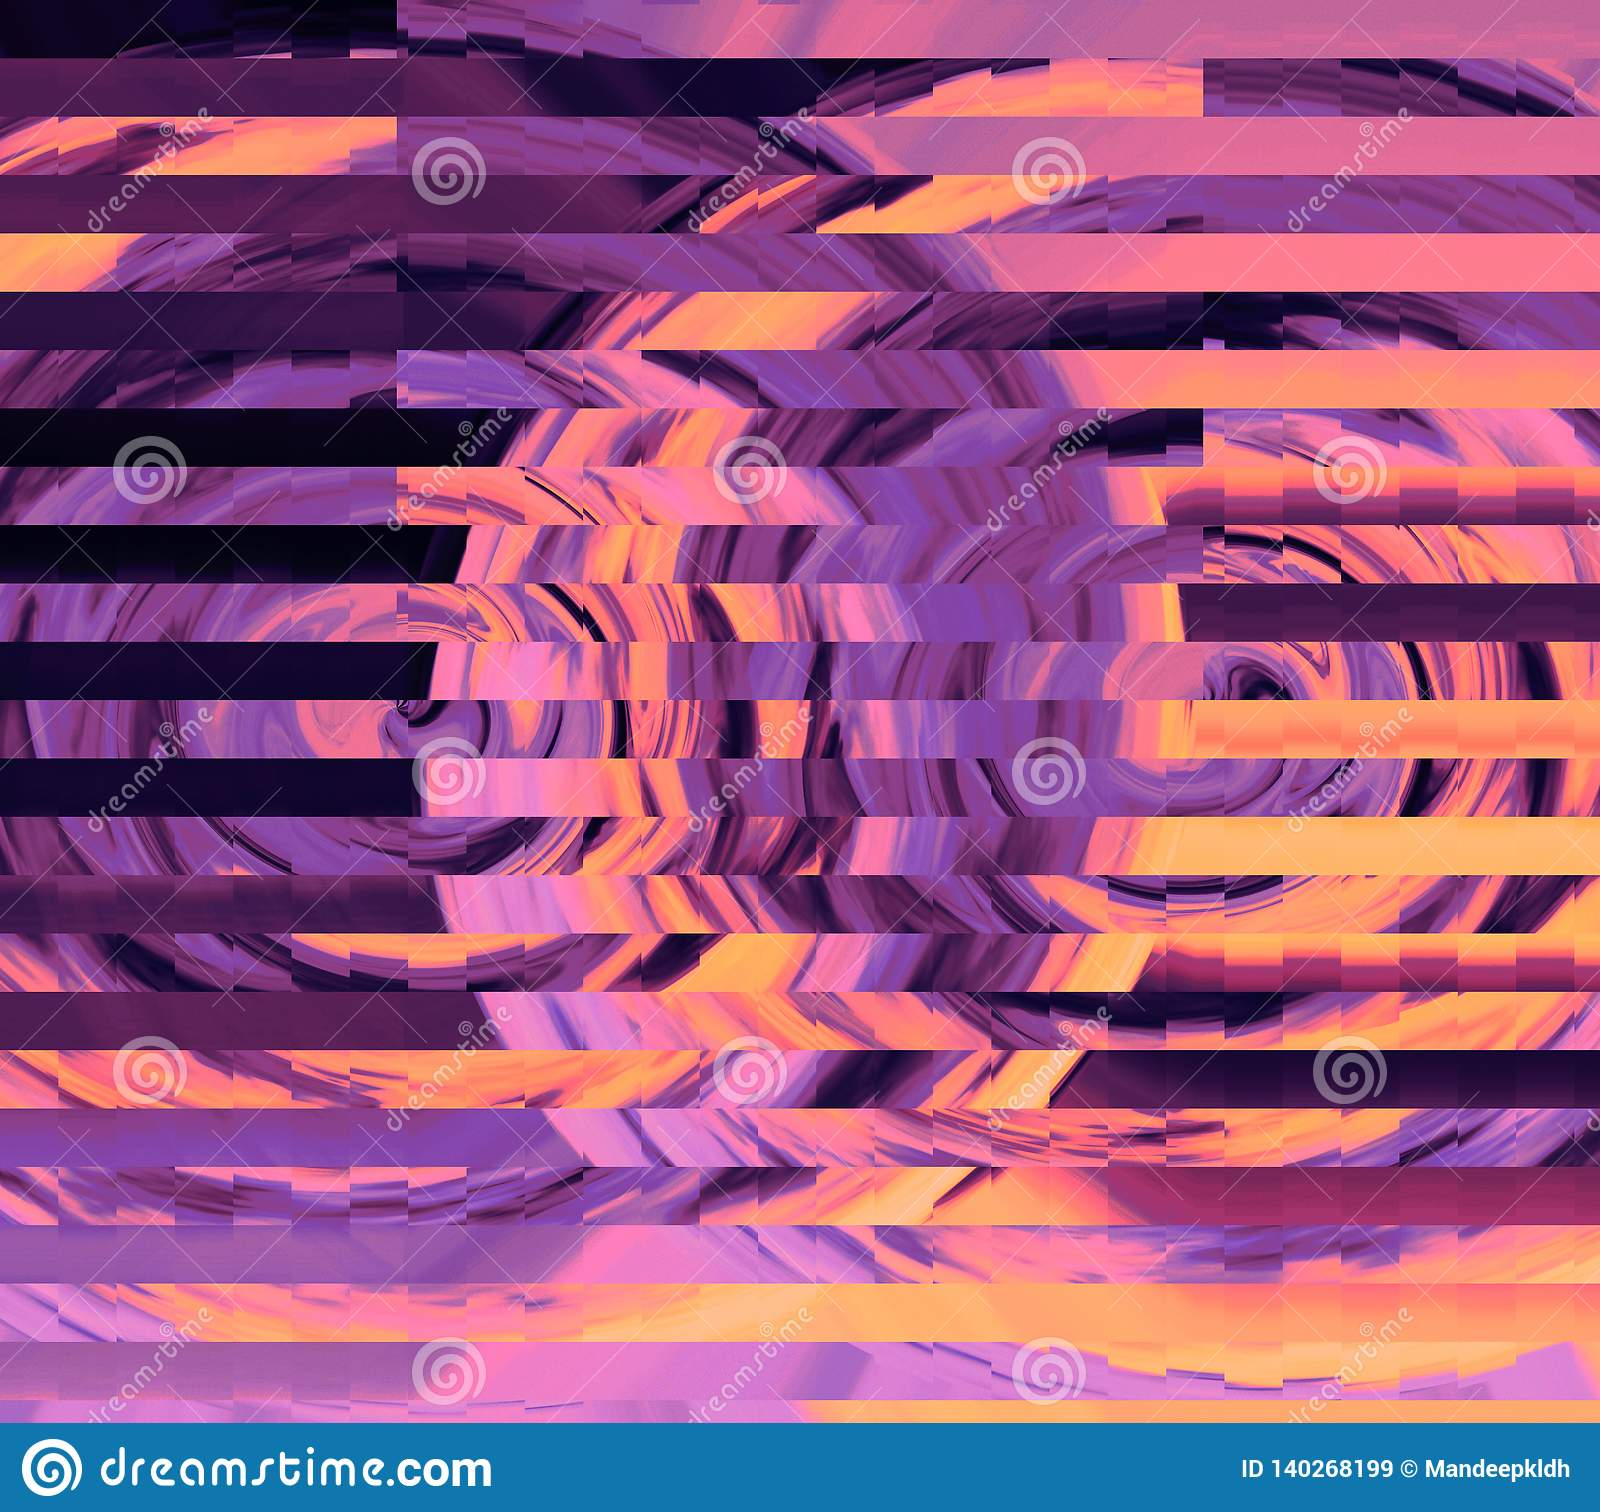 Beautiful wallpaper design. Colorful texture and background. Modern digital graphic design. Multi rich colored artwork.